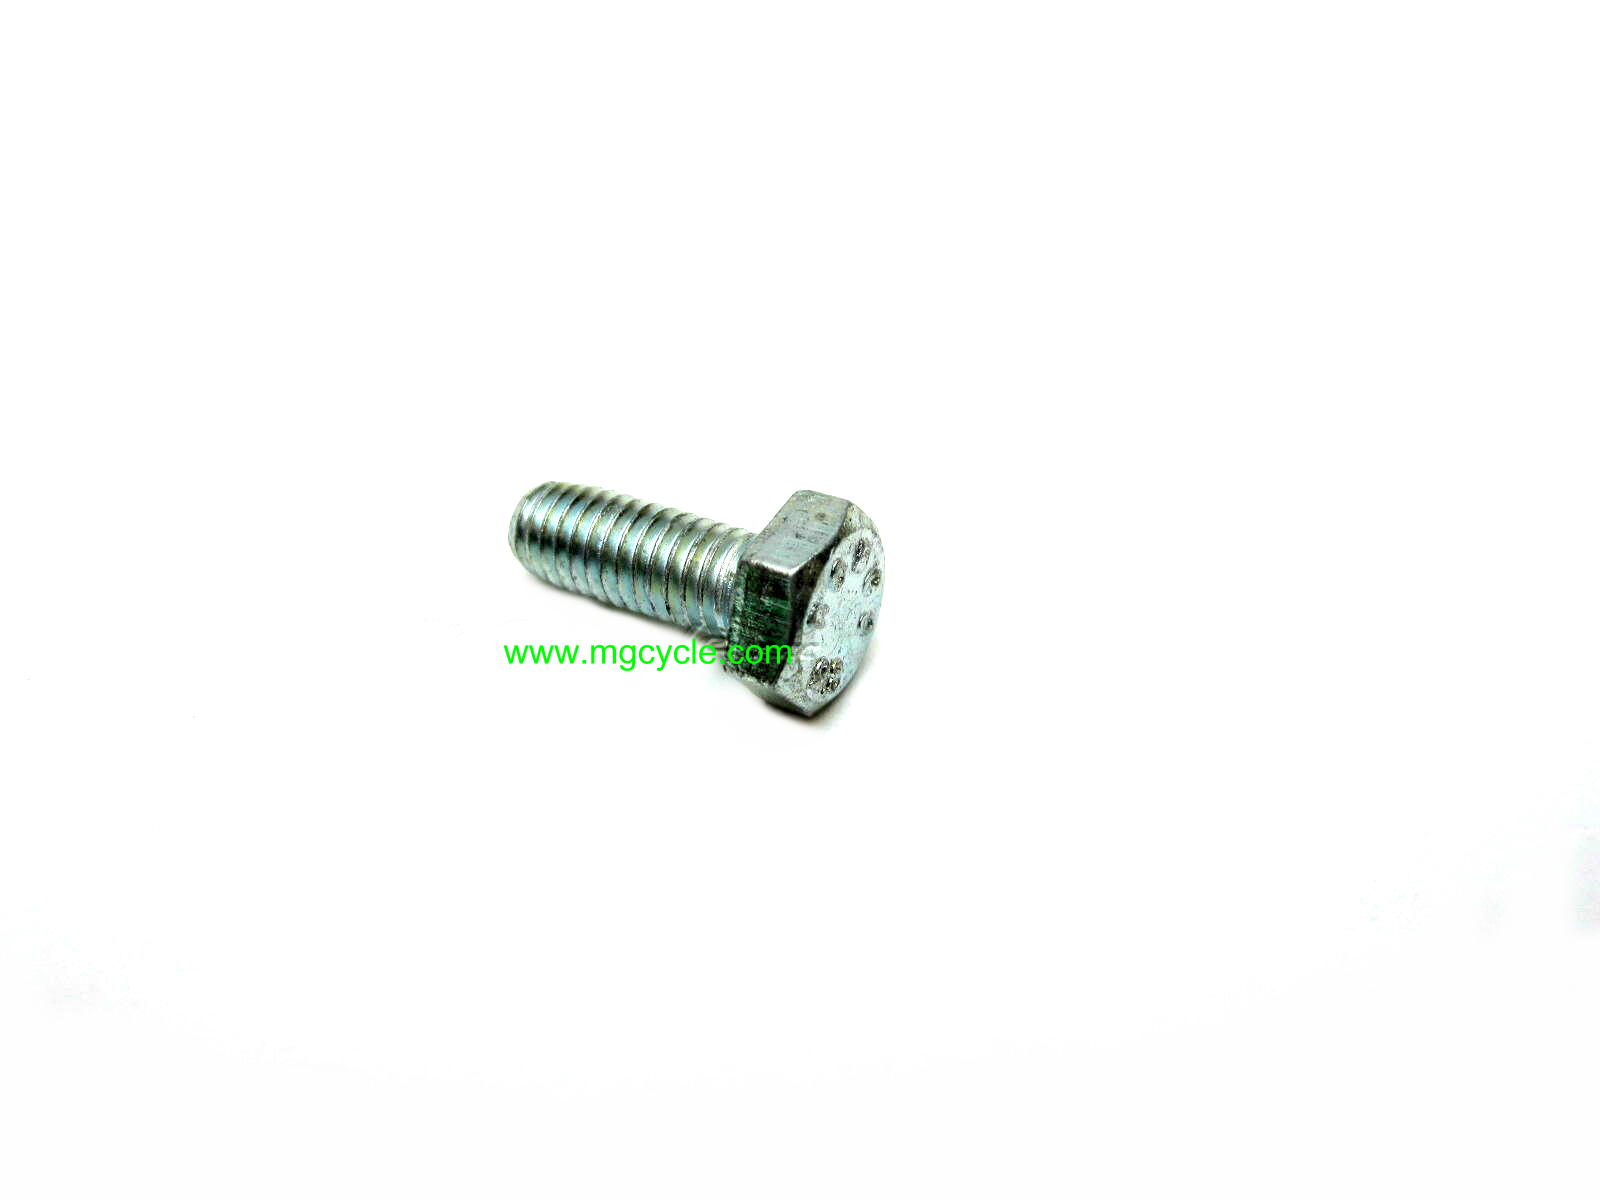 M6 hex head bolt M6x16x1.0 sub 98084316